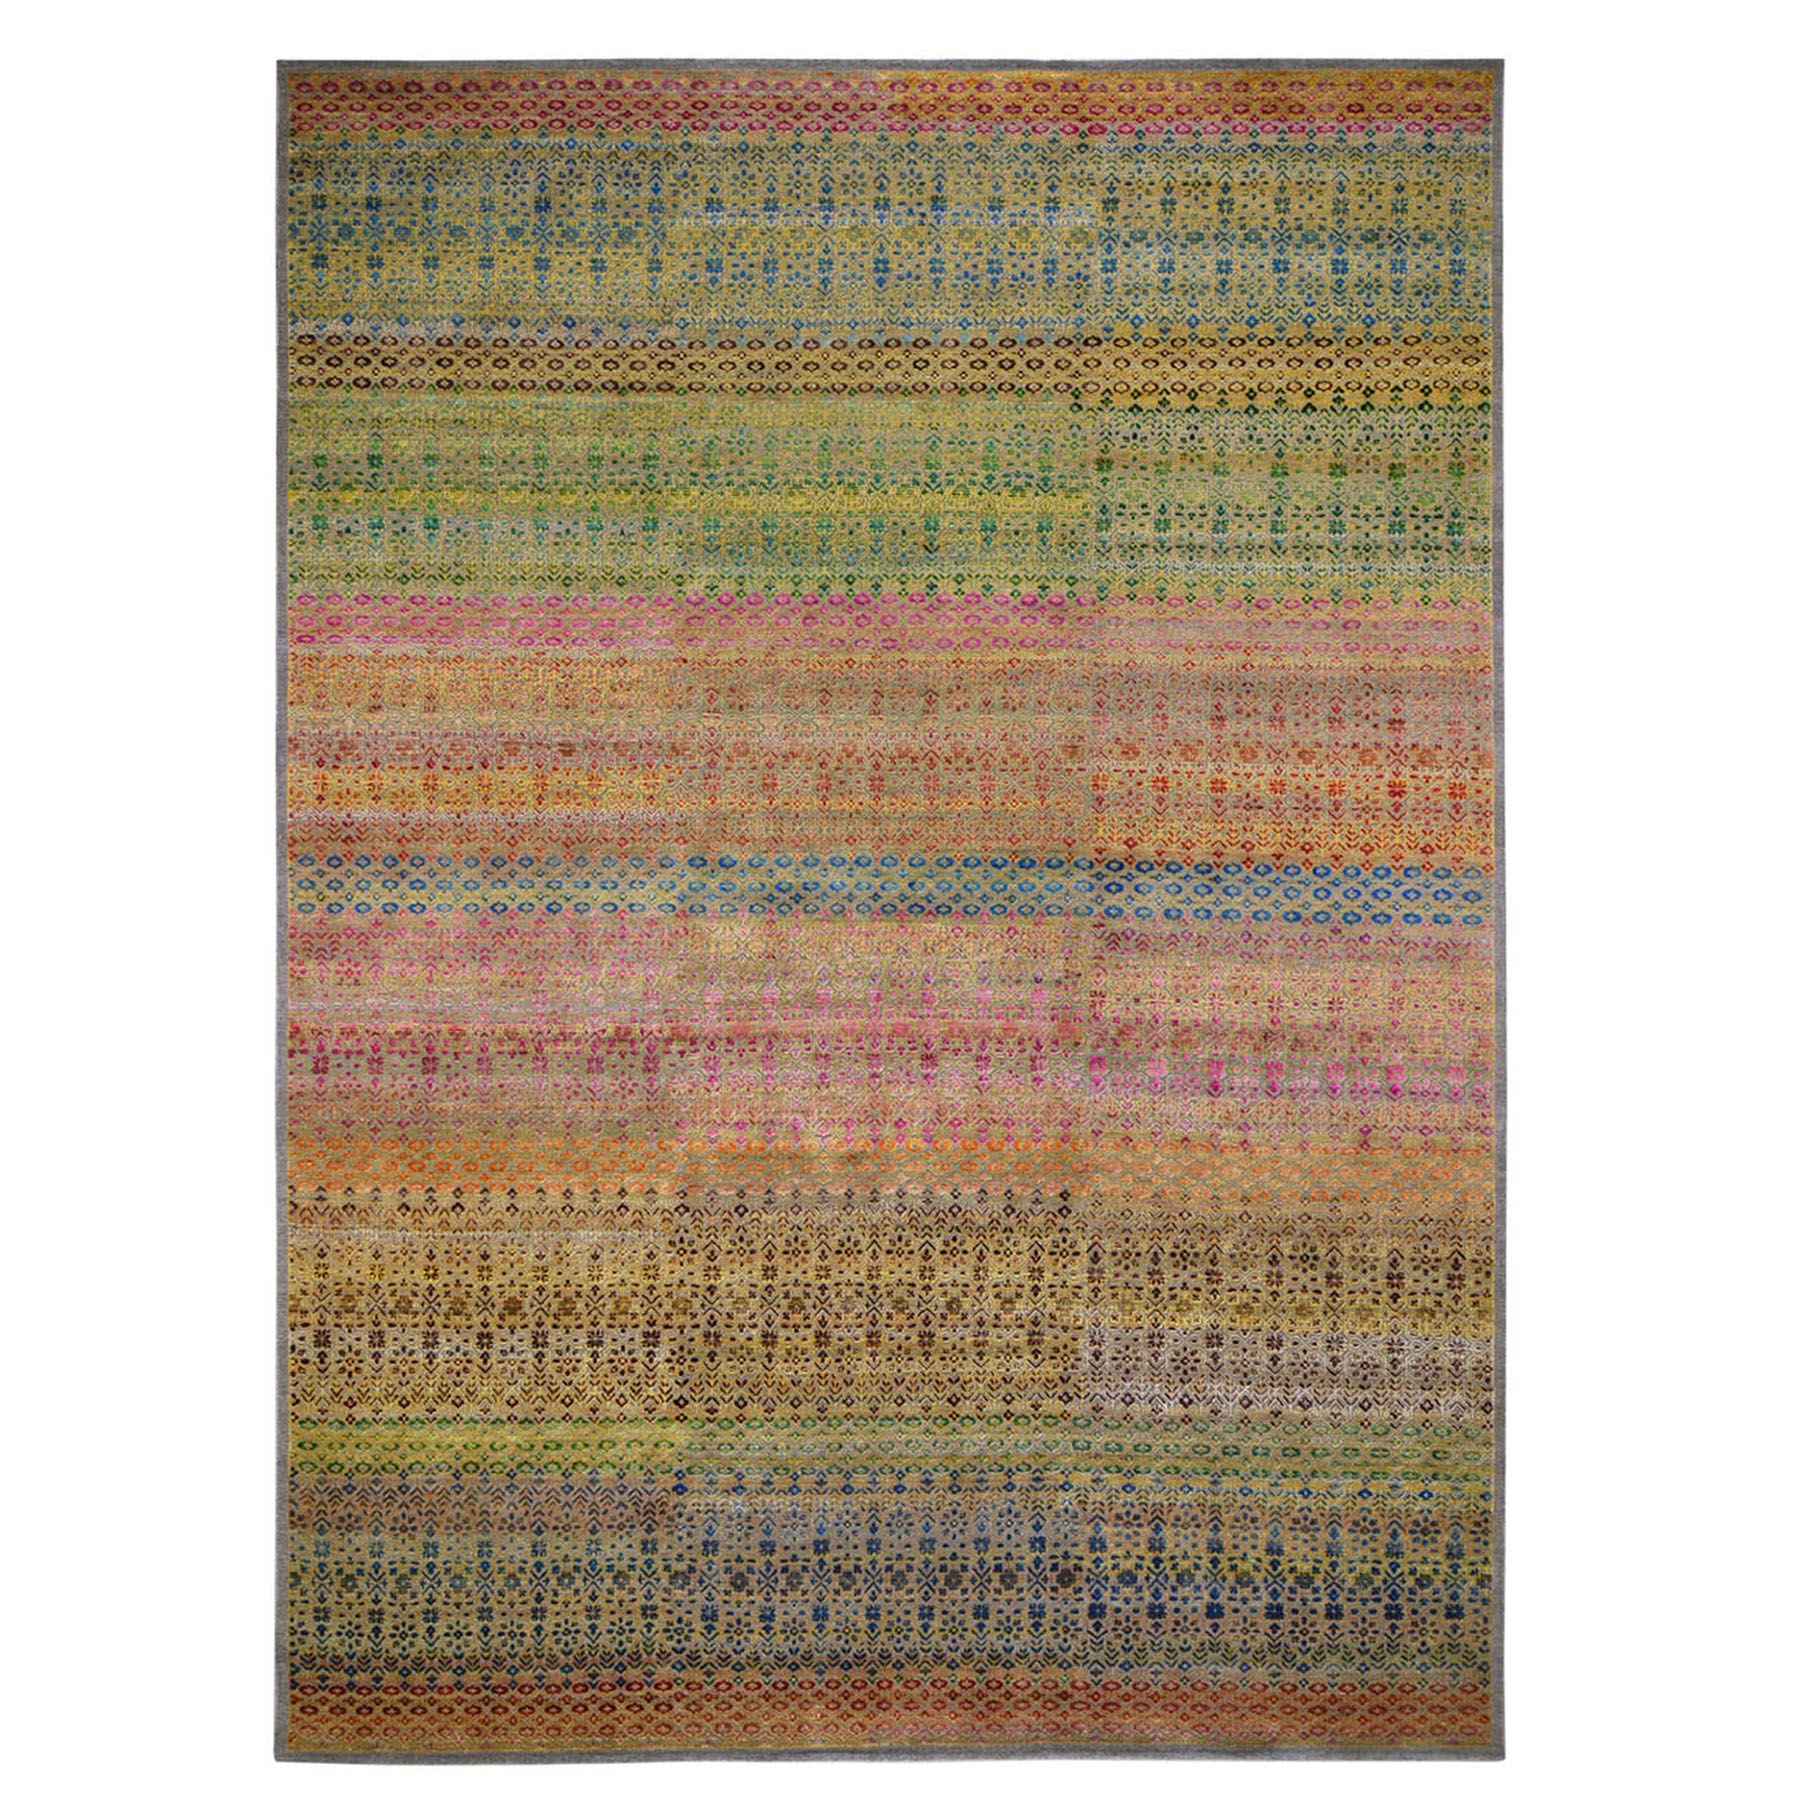 "9'8""x14' Colorful Grass Design Sari Silk Textured Wool Modern Hand Knotted Oriental Rug"